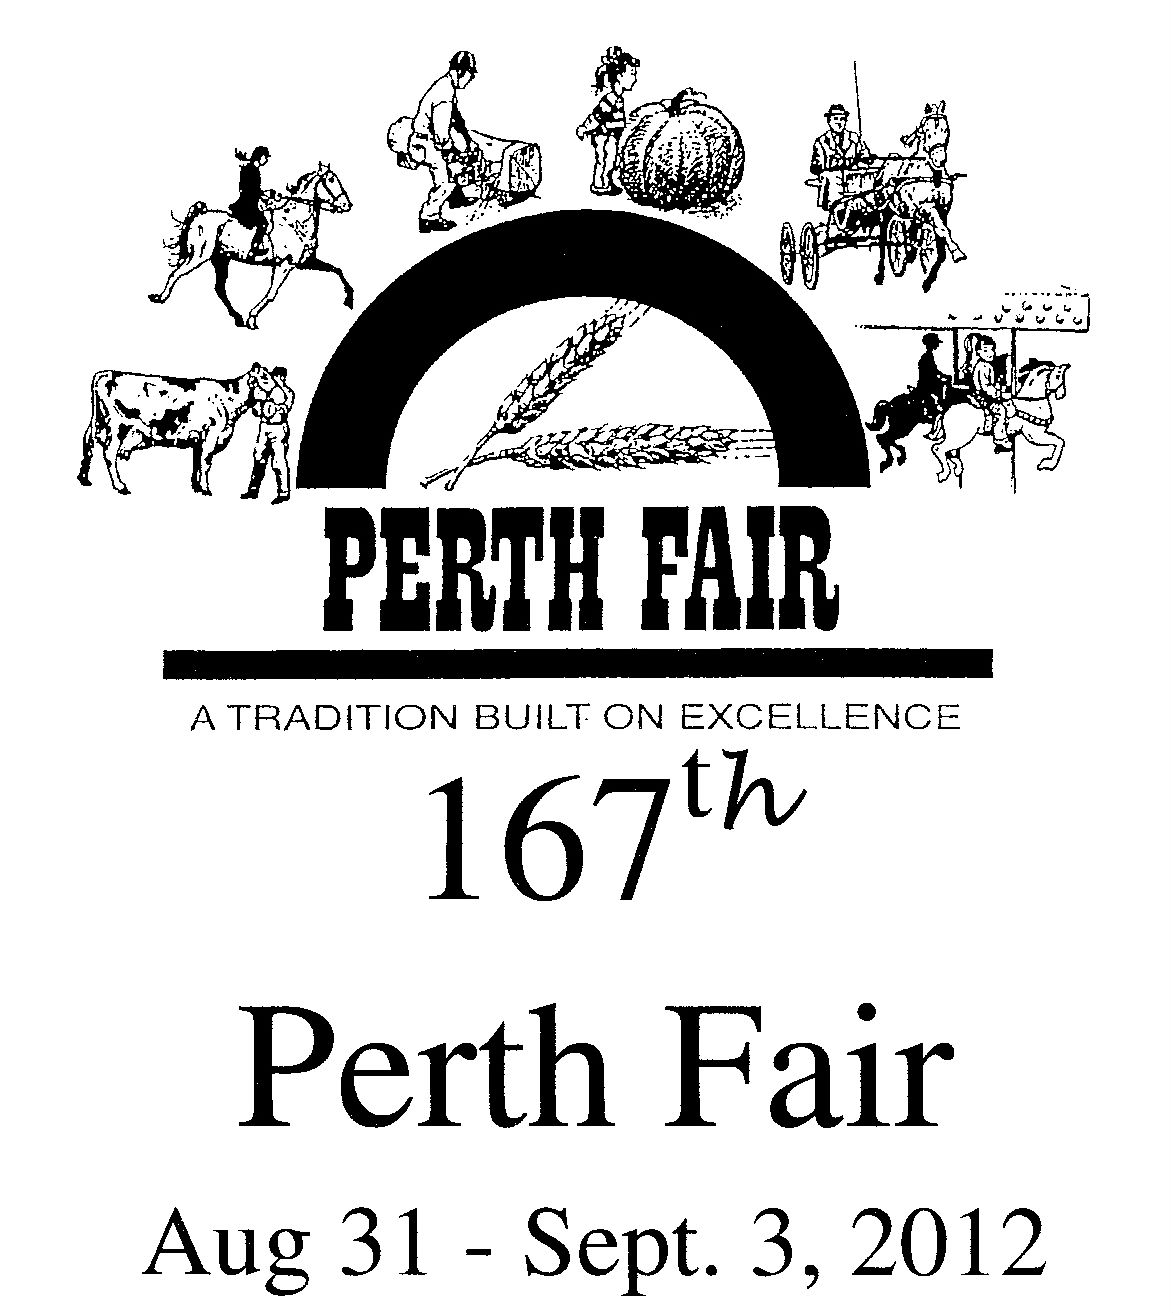 See You At The Perth Fair Saturday September 1st